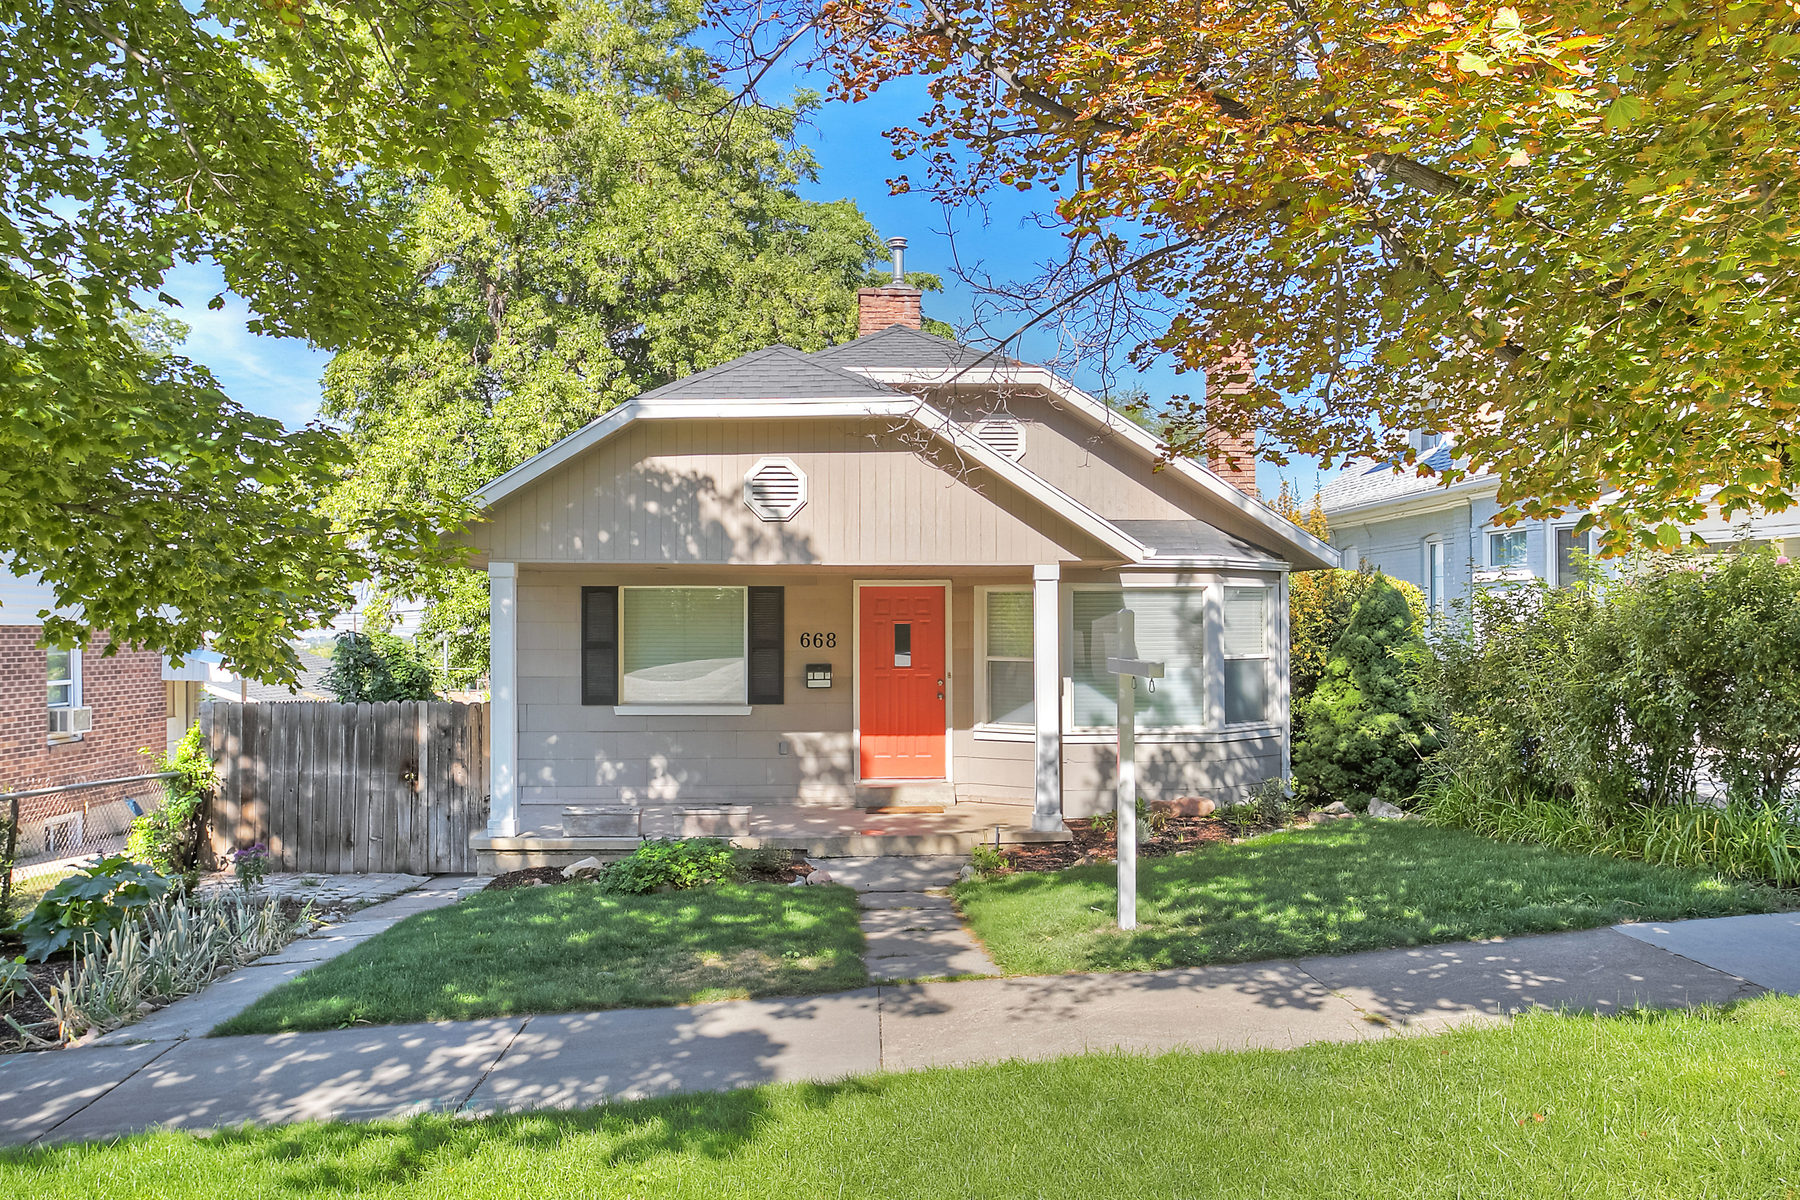 Single Family Home for Sale at Darling Bungalow in Coveted 9th and 9th Neighborhood 668 South 1000 East Salt Lake City, Utah 84102 United States